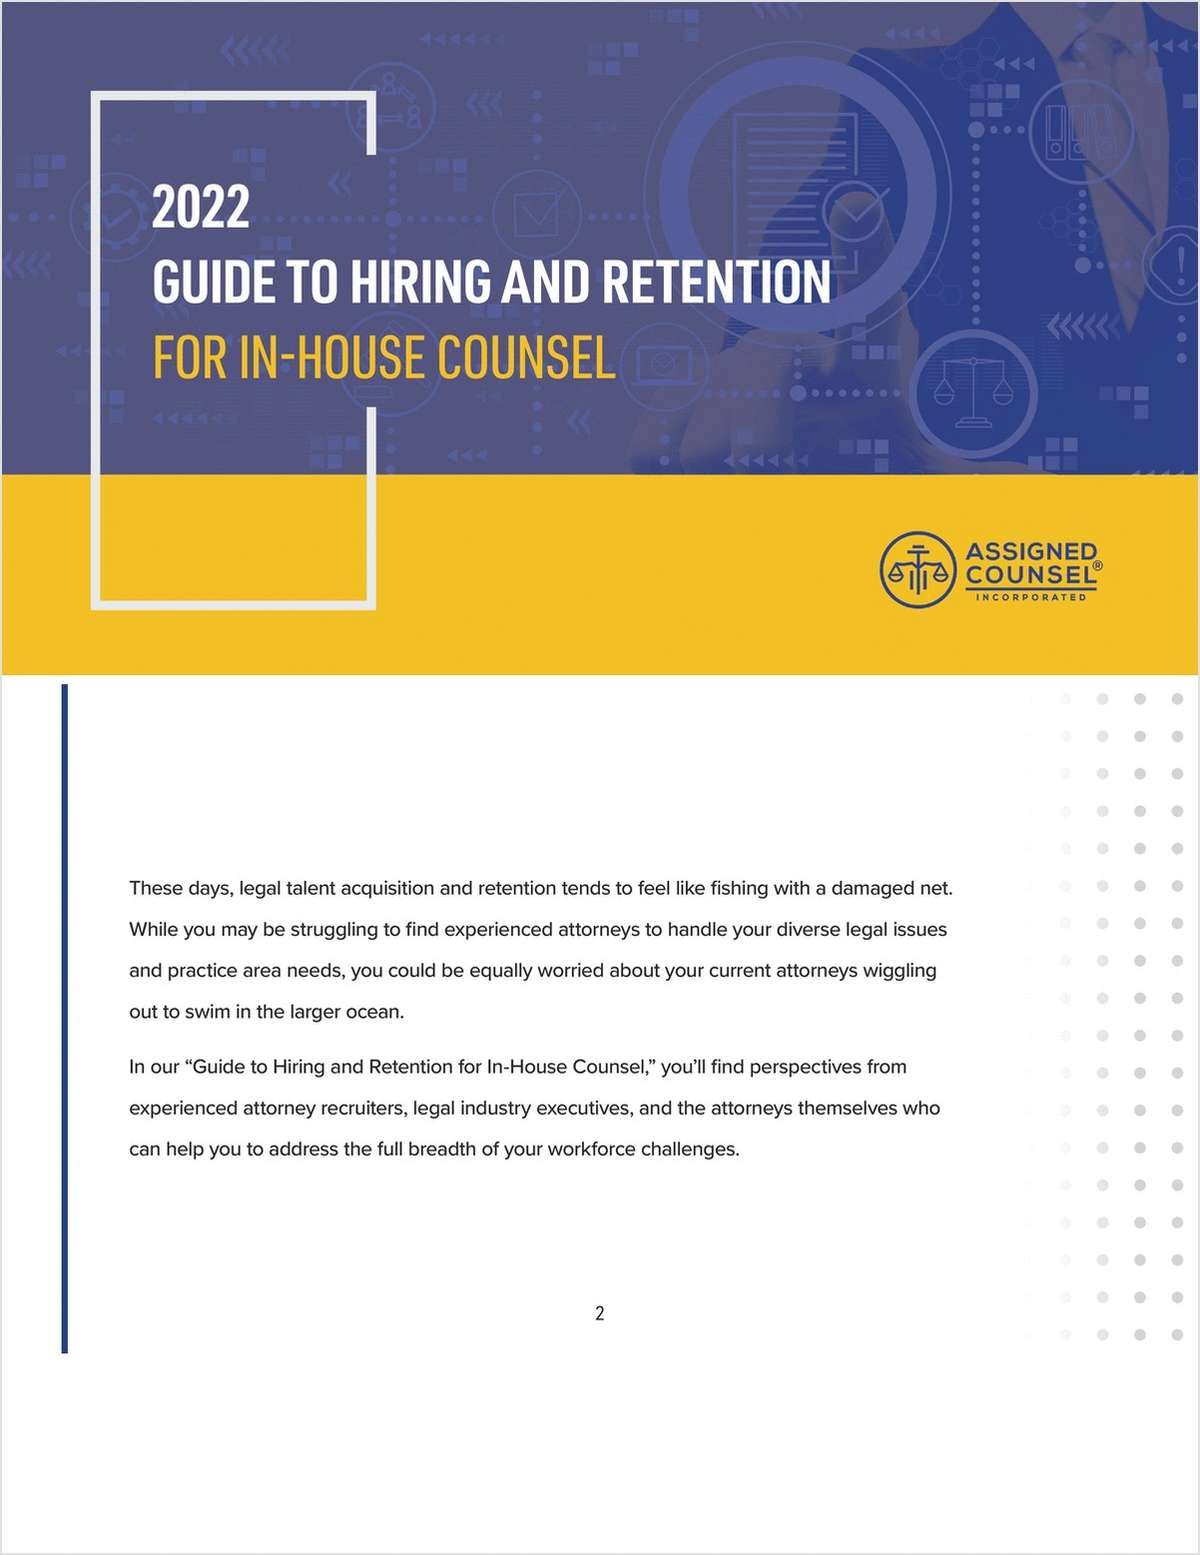 Struggling with your legal workforce? Get your guide to hiring and retaining top legal talent. Experienced attorney recruiters, industry executives, and attorneys offer tips and strategies to benefit your law department.